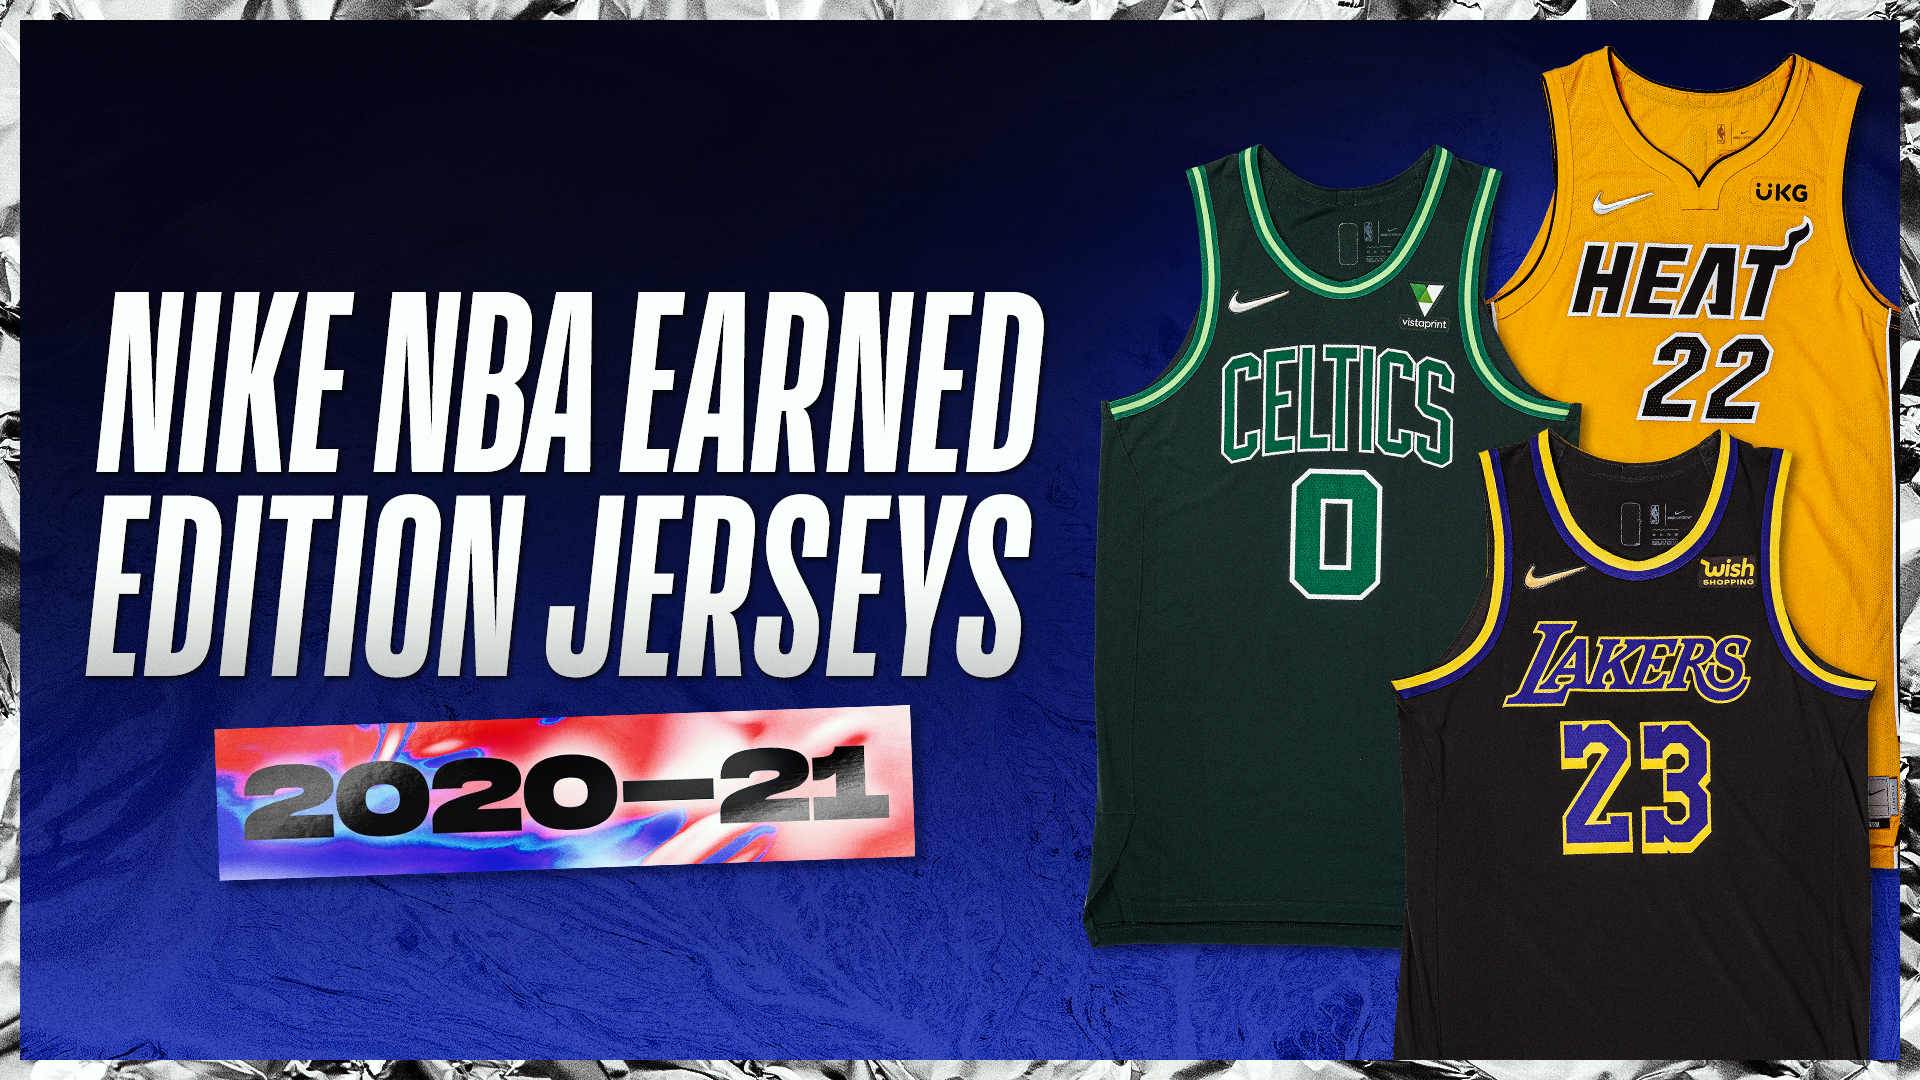 2020-21 Nike NBA Earned Edition Uniforms Are Available Now